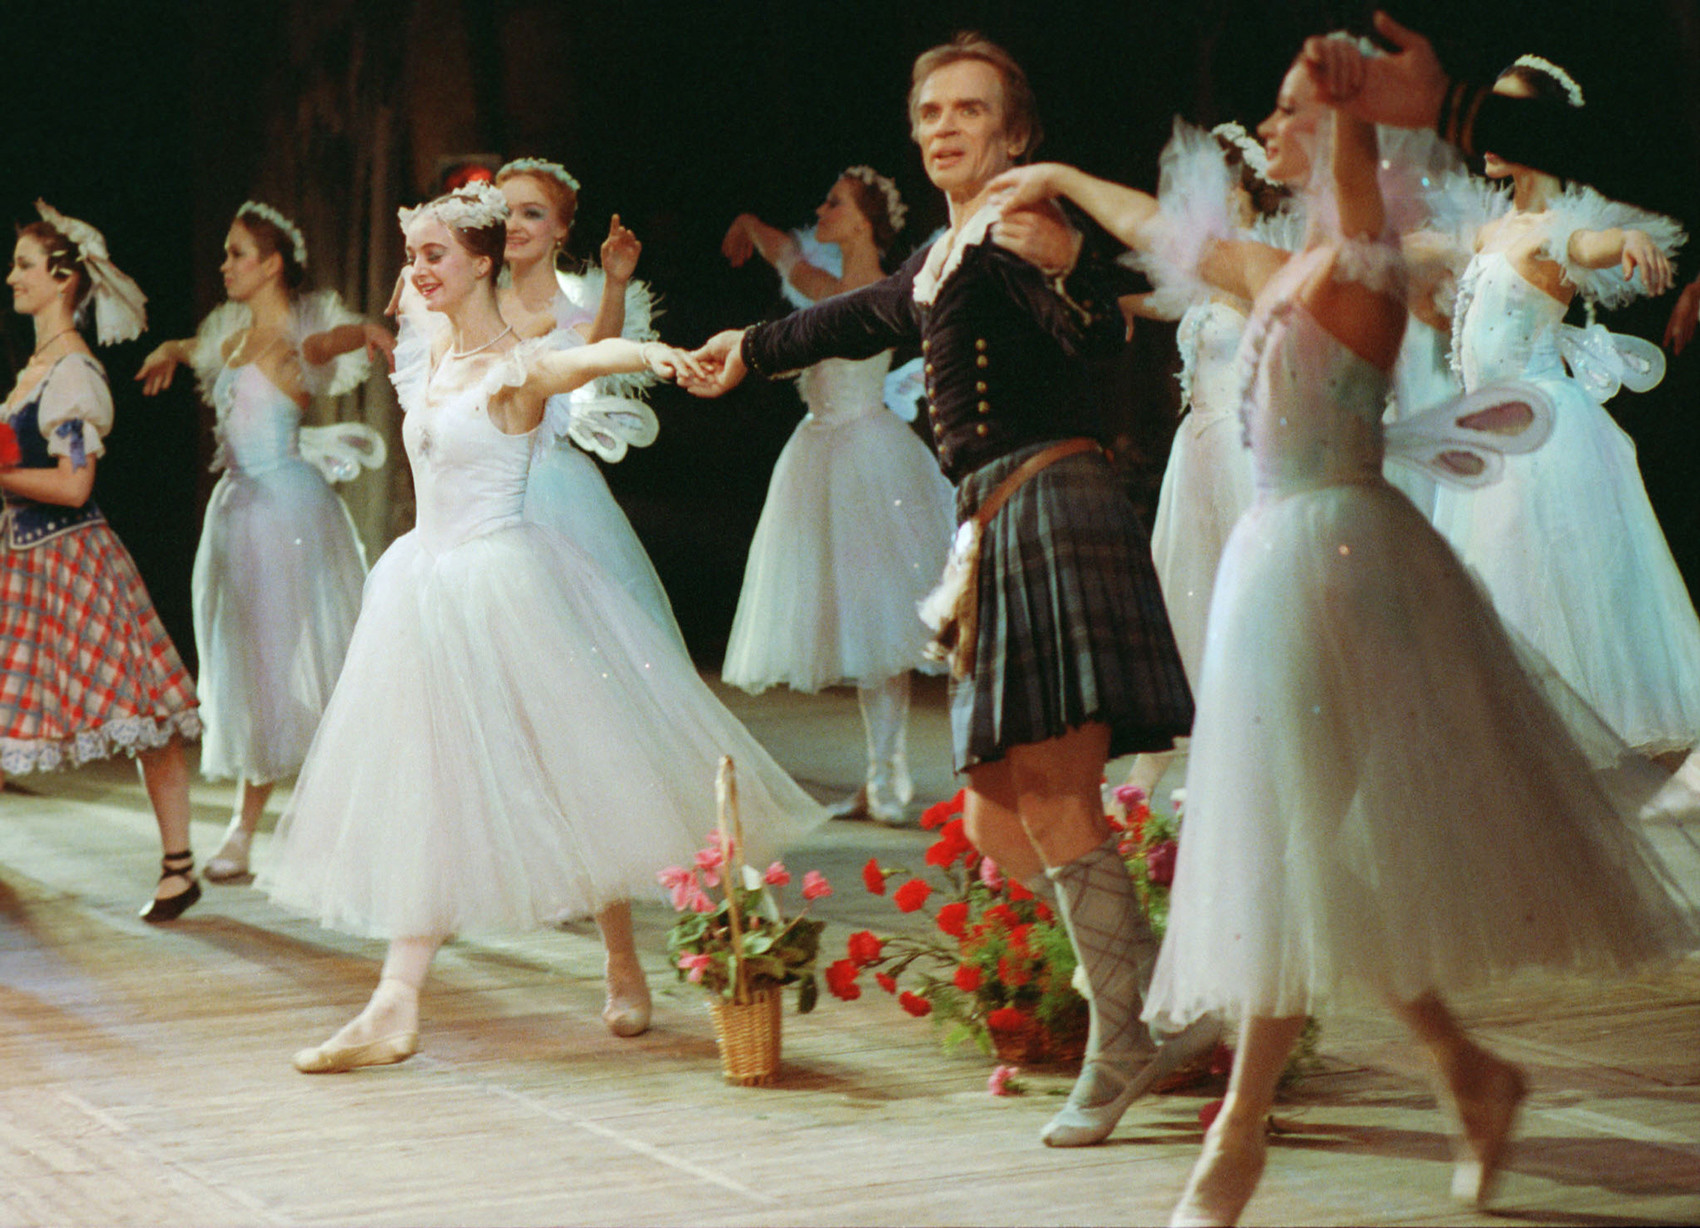 In 1989, 30 years after he left his motherland Rudolf Nuriyev visited Leningrad to dance at the Kirov Opera and Ballet Theatre